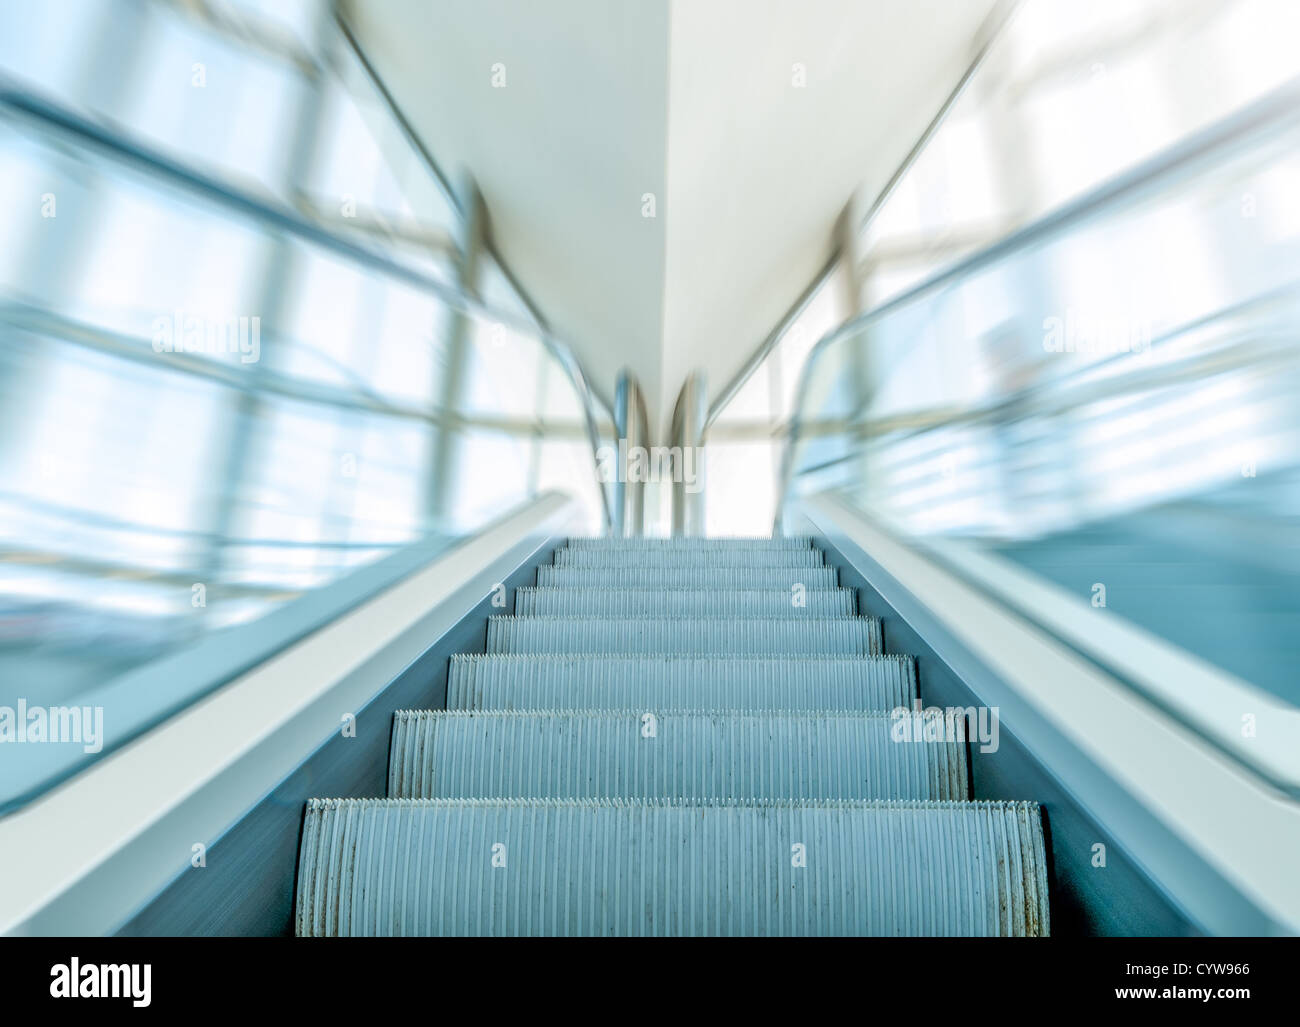 Perfect Close View Of Moving Staircase Or Escalator Inside Modern Business Centre.  Empty Escalator With Blue Glass Handrails In Motion.